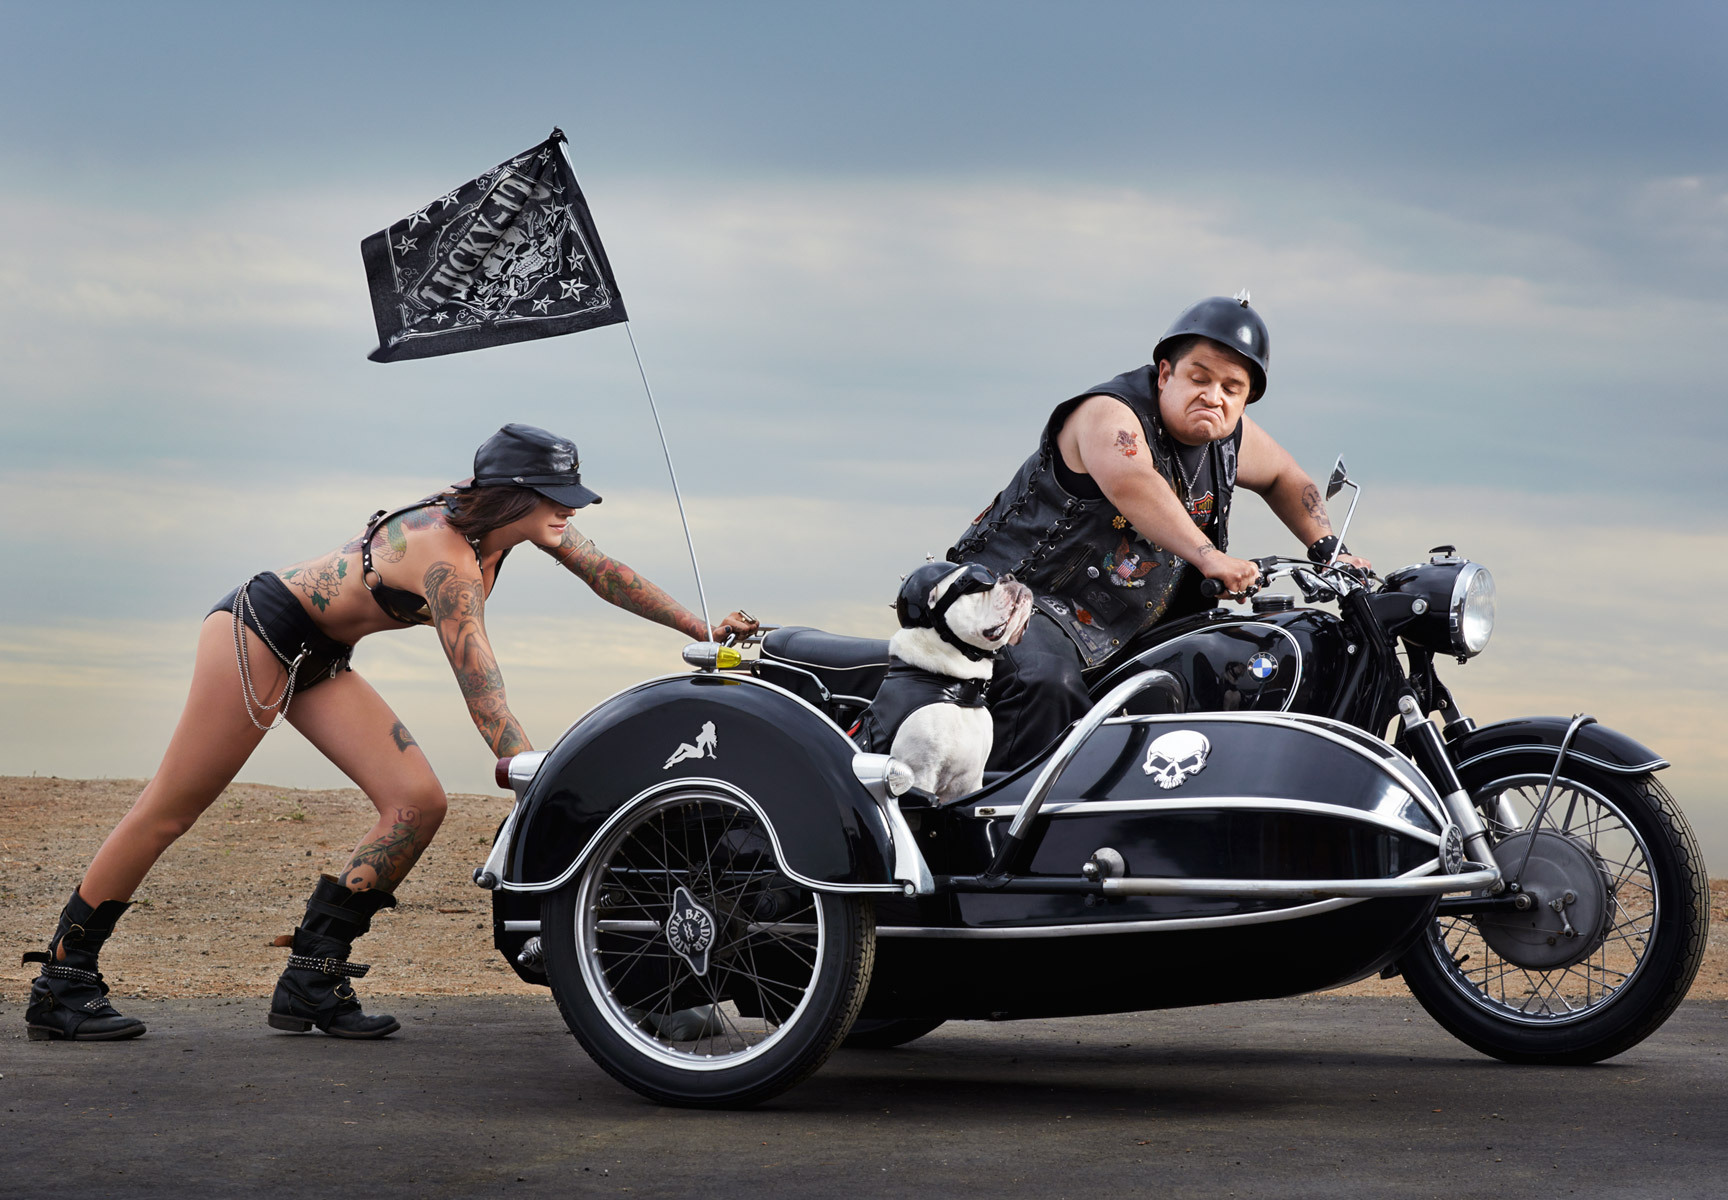 motorcycle comedy pictures  pb-patton-oswalt-01-motorcycle-120-flat.jpg | Gavin Bond Photography